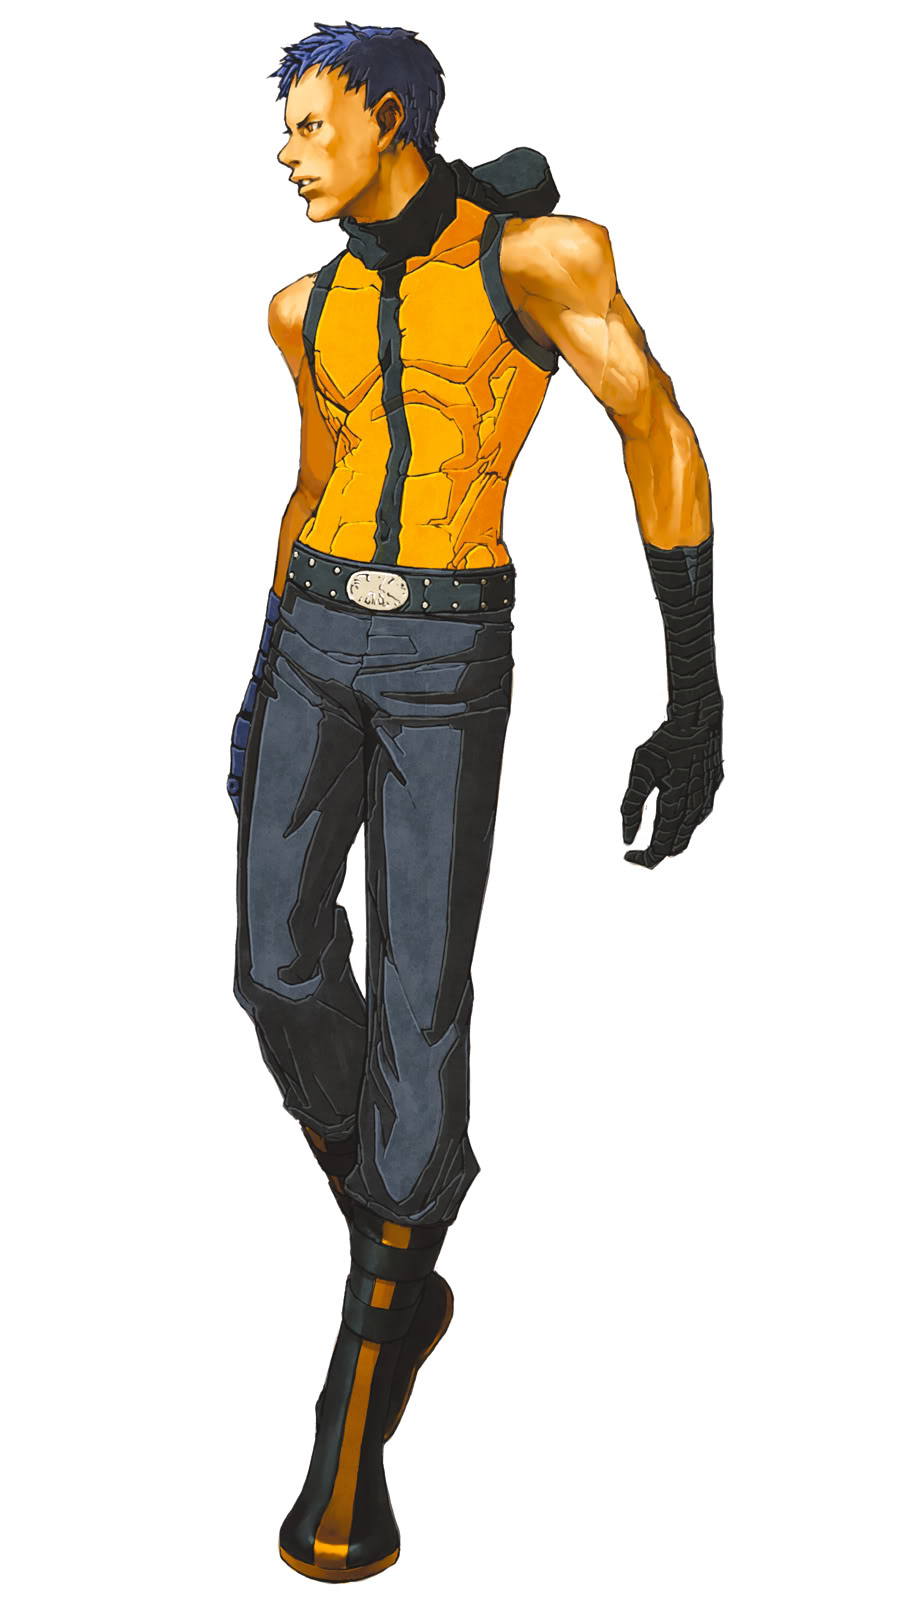 Character Design King Of Fighters : K snk wiki fandom powered by wikia